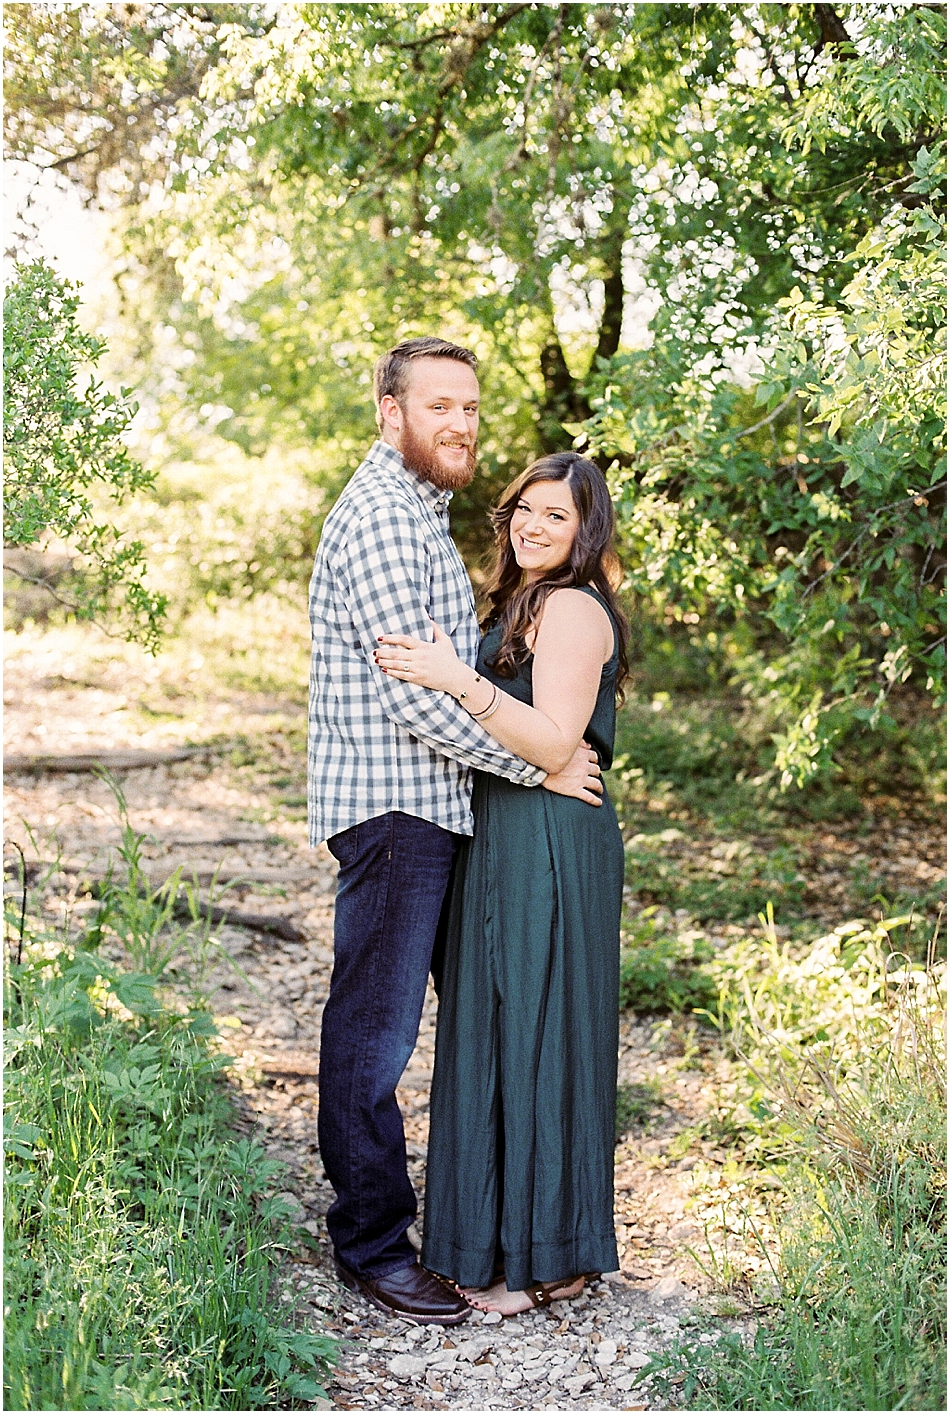 Brooke + Nick | Fine Art Creek Side Engagement | Film | Emilie Anne Photography-11.jpg